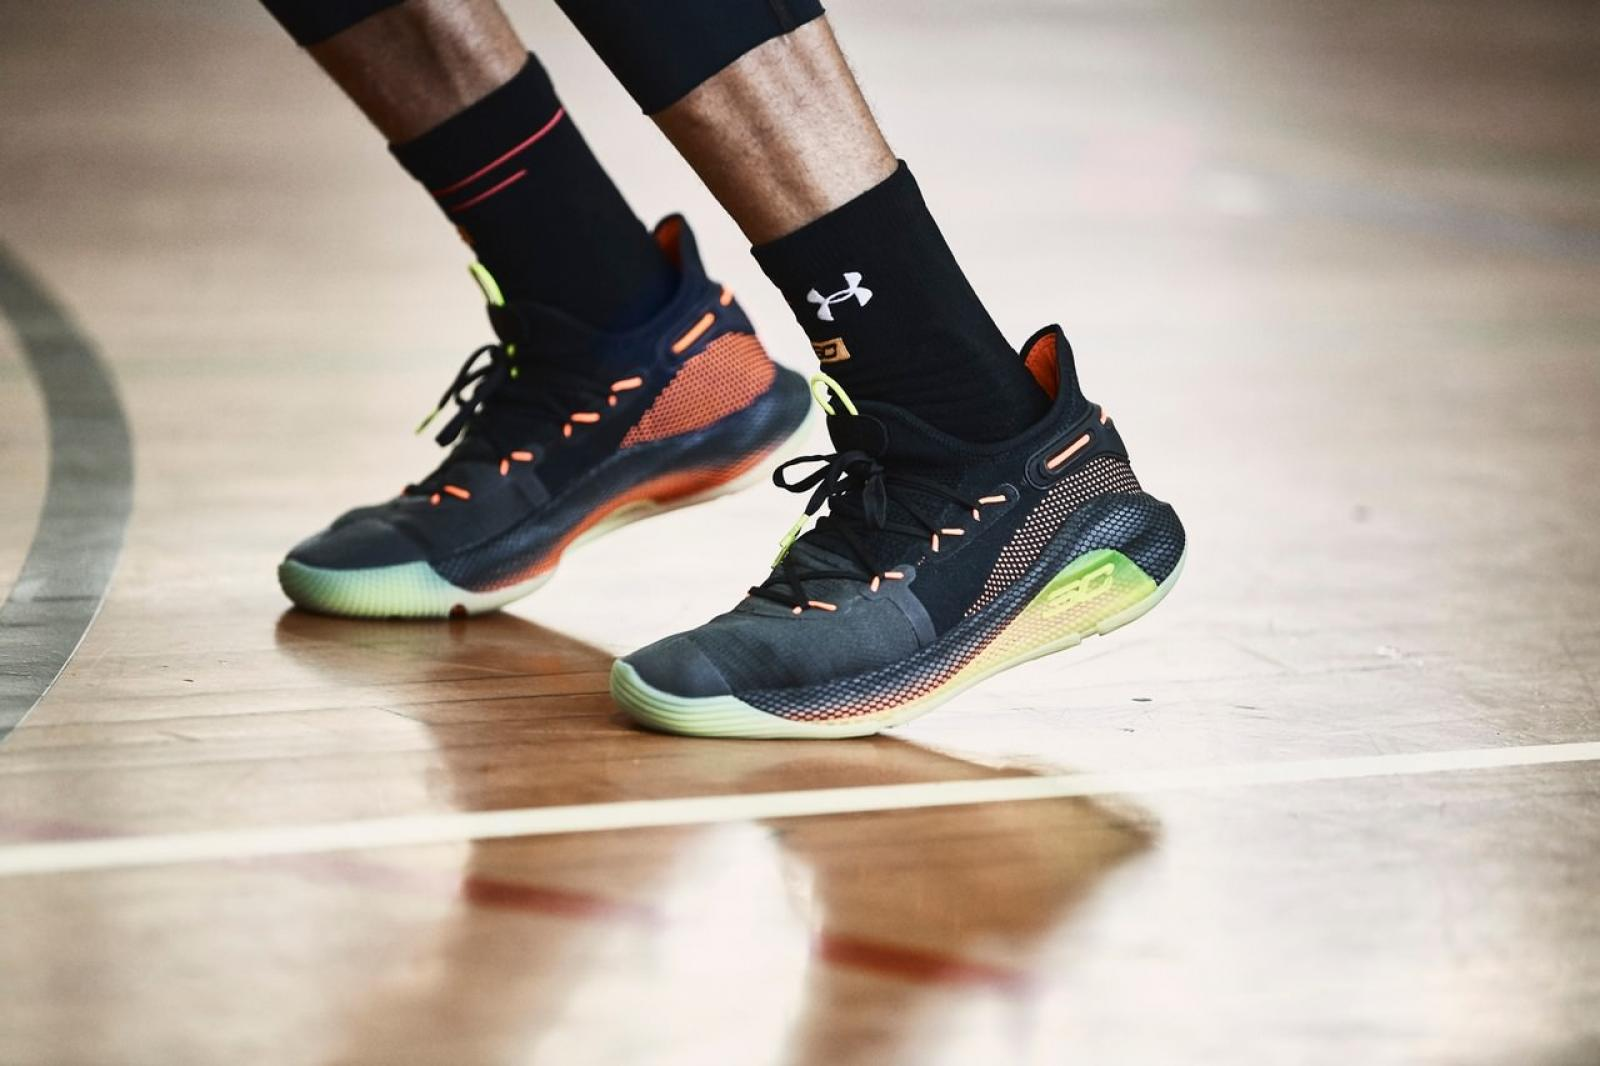 new product 00a89 db963 Introducing Curry 6 December 2018 | UA Newsroom